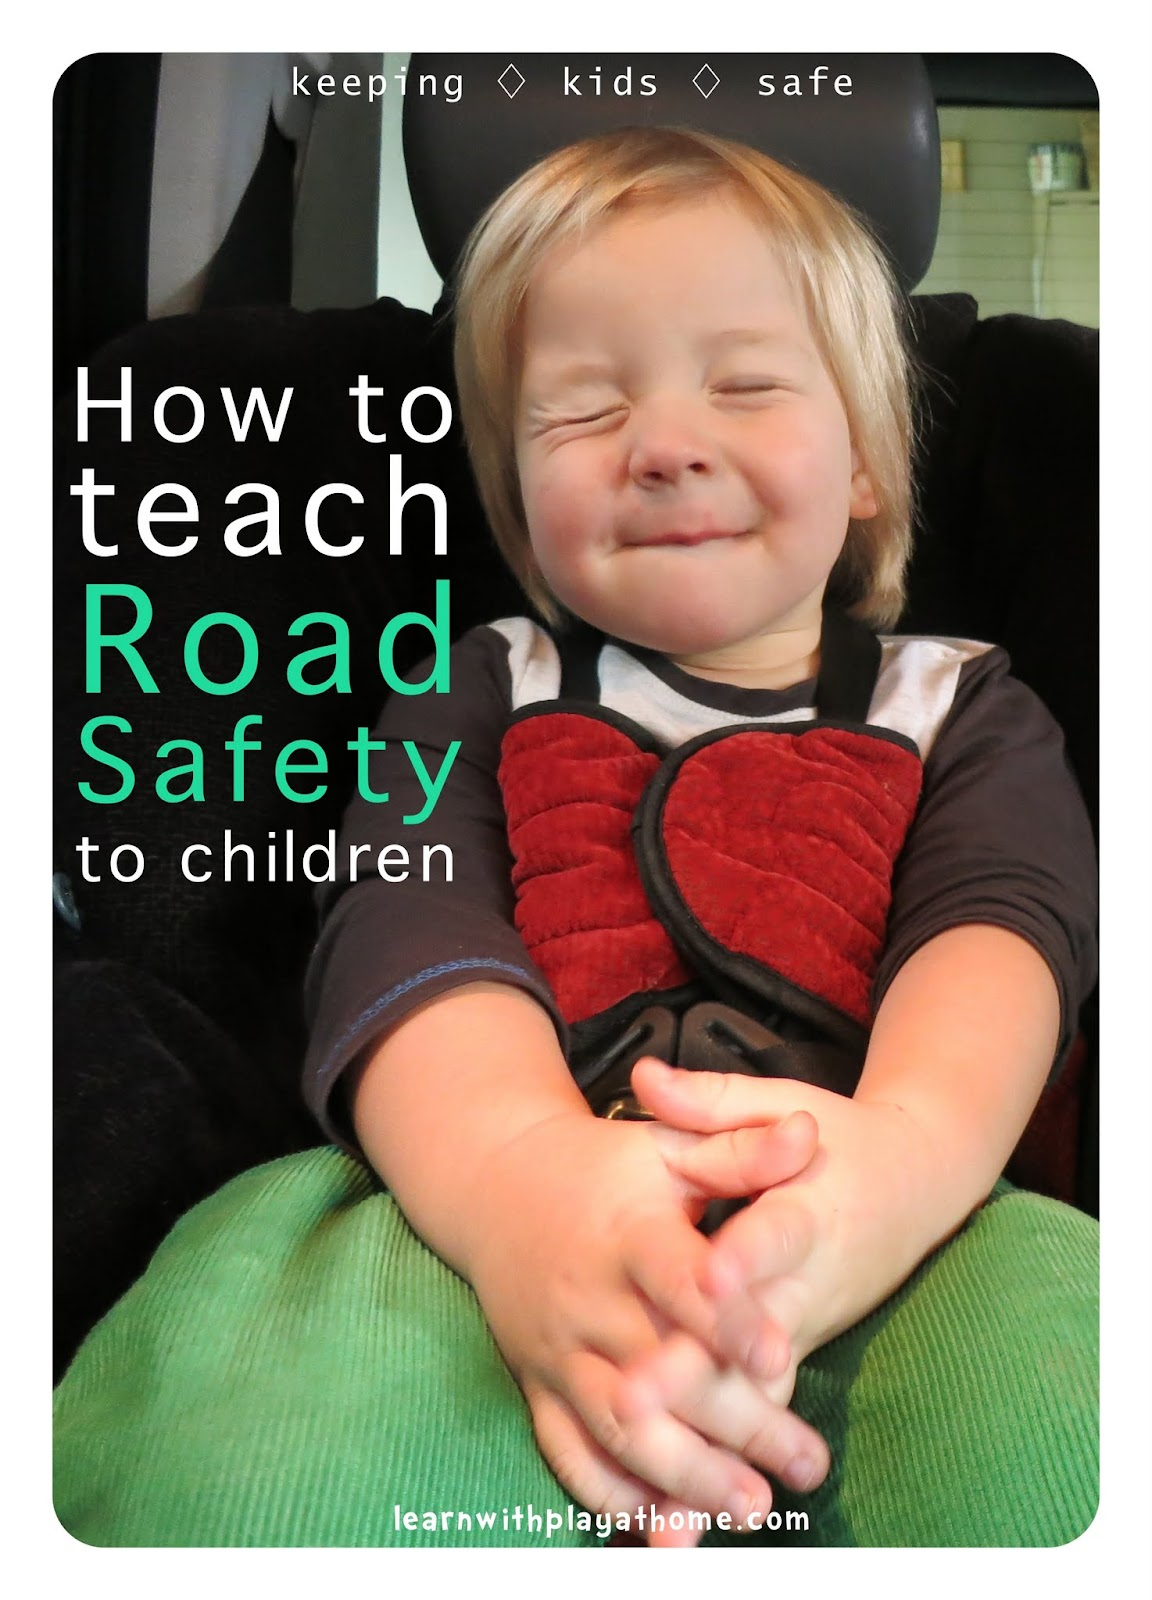 Learn With Play At Home Keeping Kids Safe How To Help